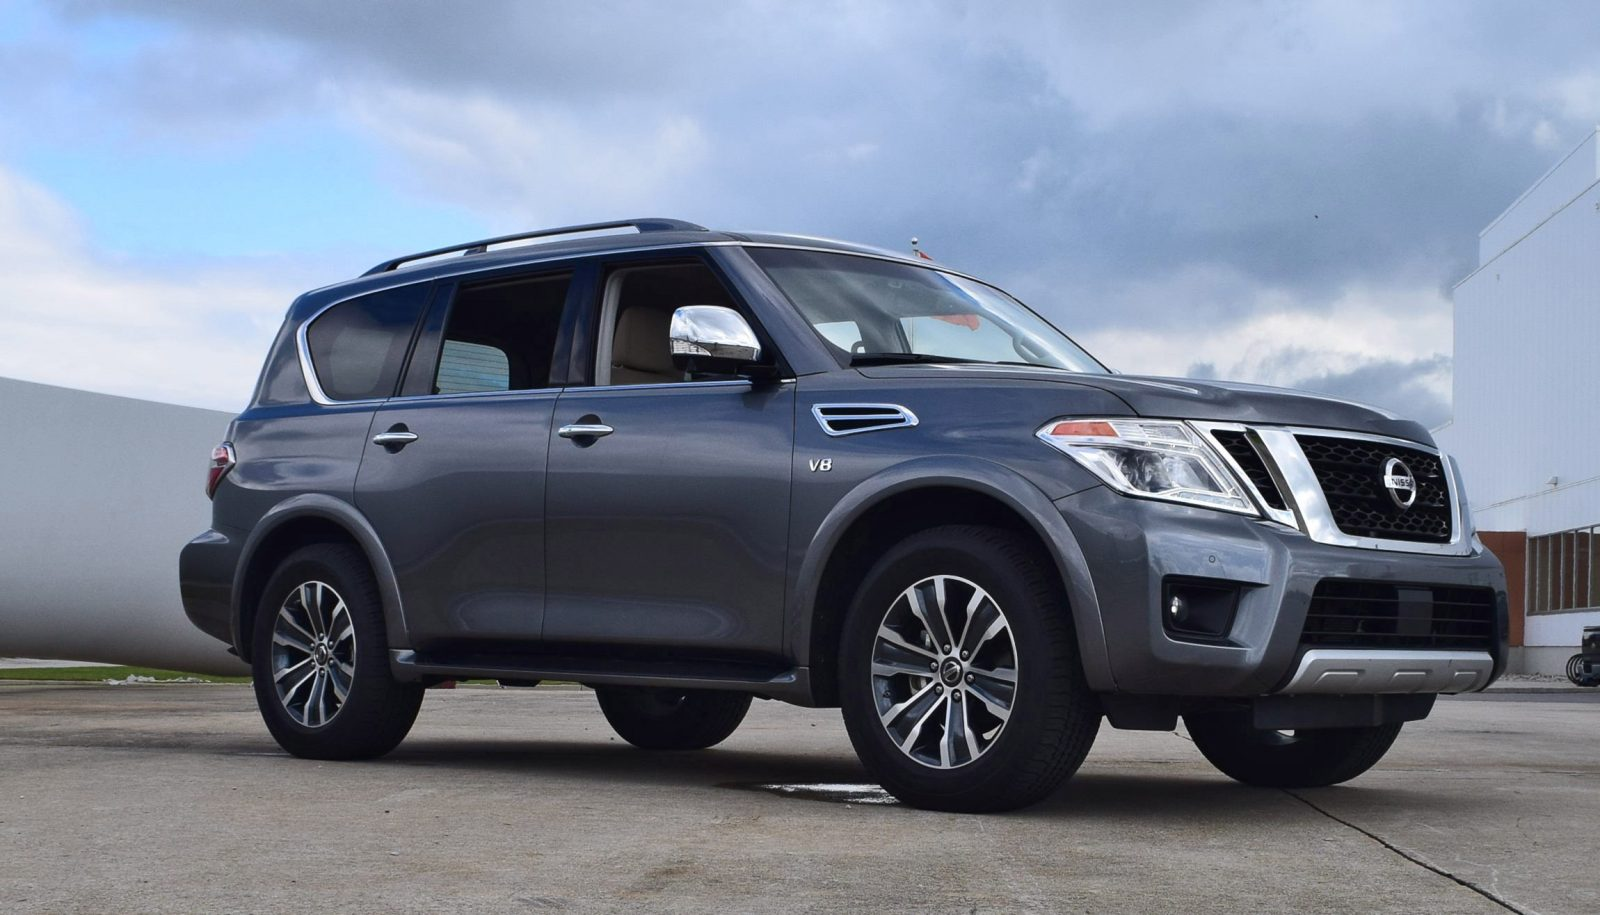 2017 nissan armada platinum road test review by tim esterdahl. Black Bedroom Furniture Sets. Home Design Ideas